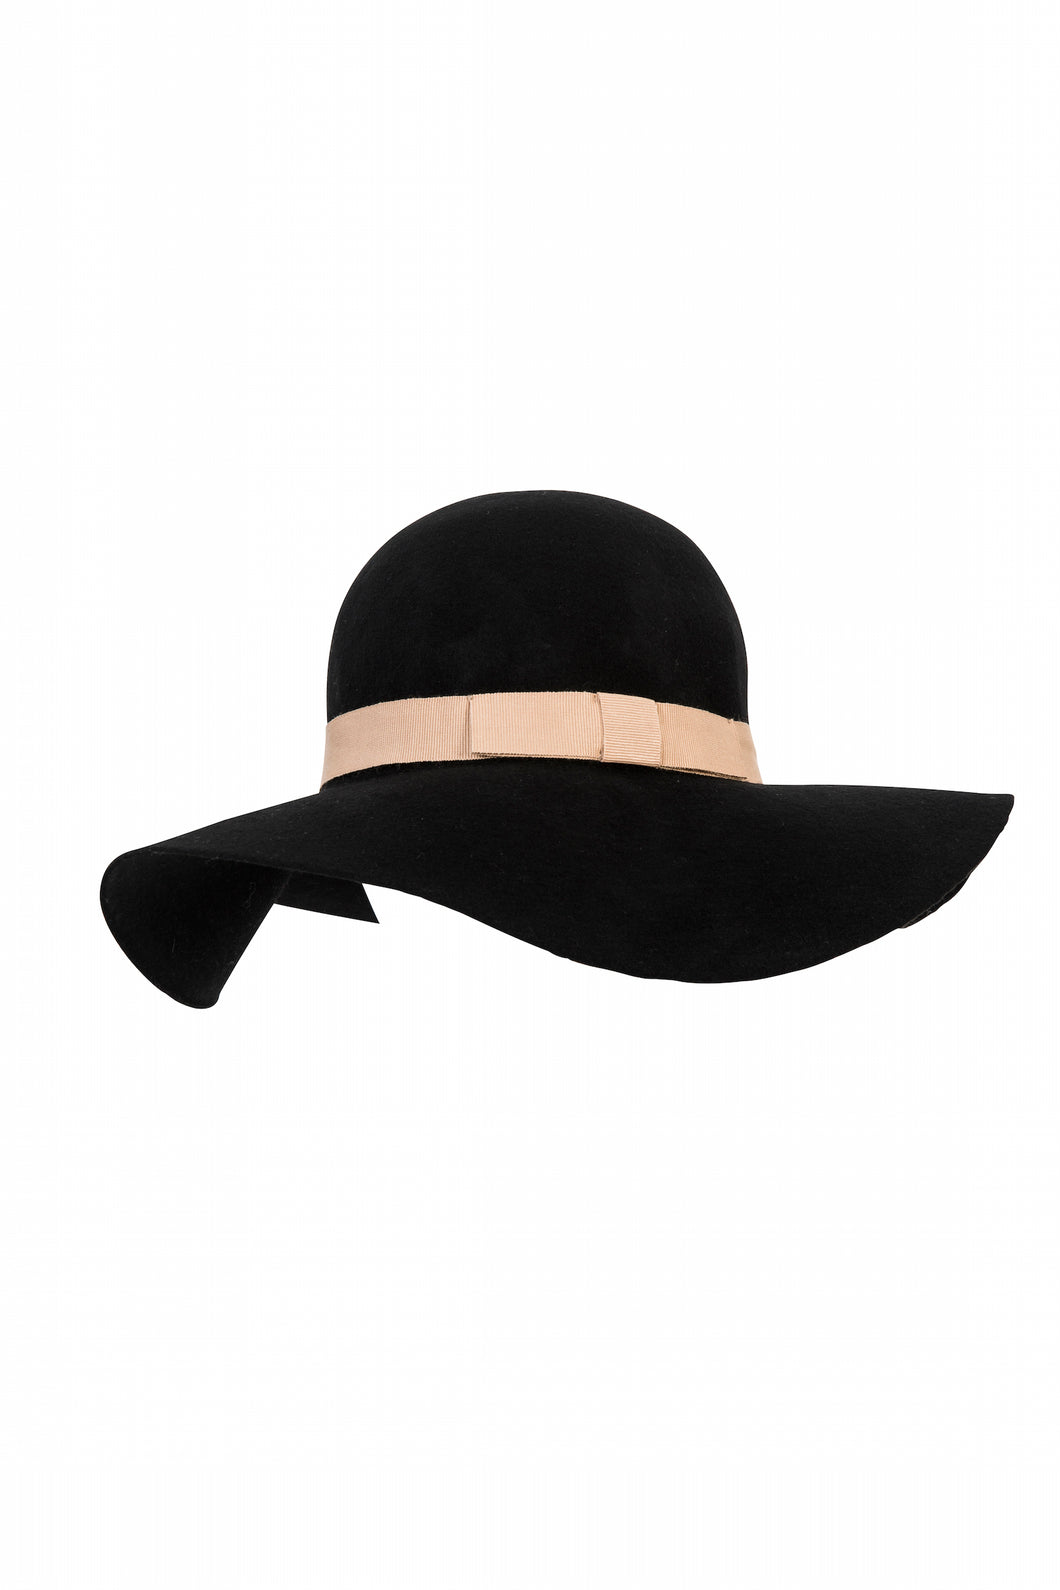 Kate and Confusion Black wool felt ladies floppy hat with pink grosgrain ribbon